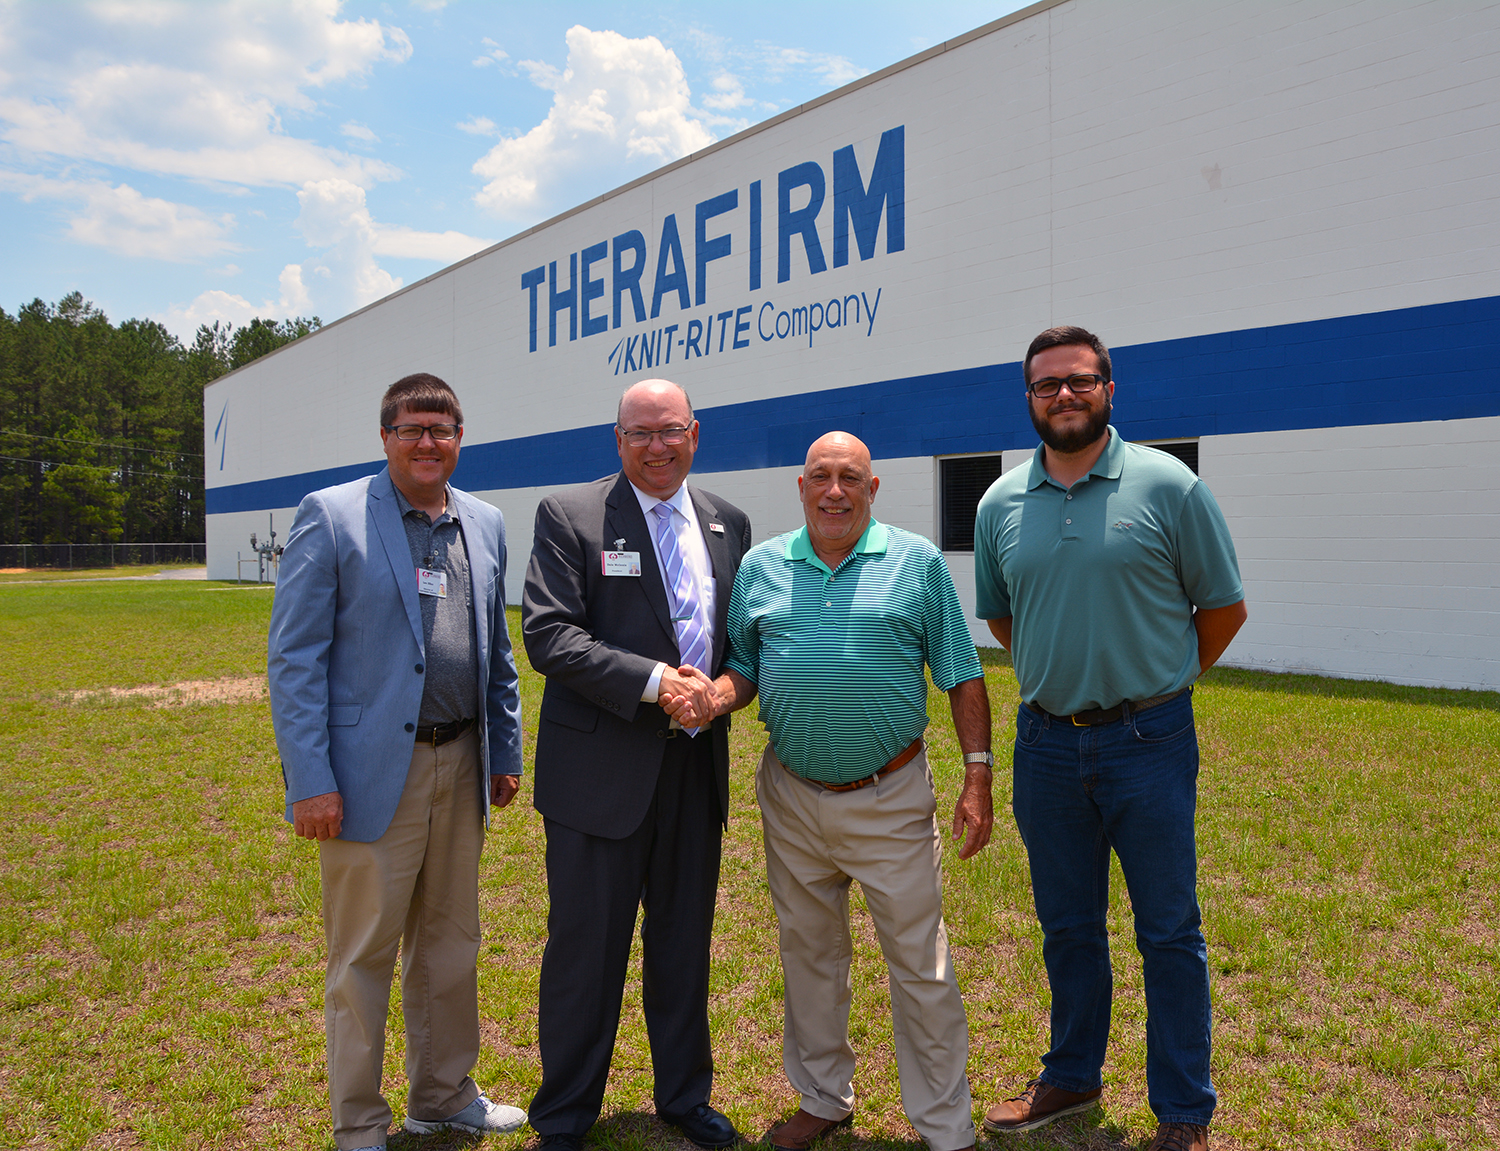 Four people stand on the grass in front of the manufacturing plant Therafirm